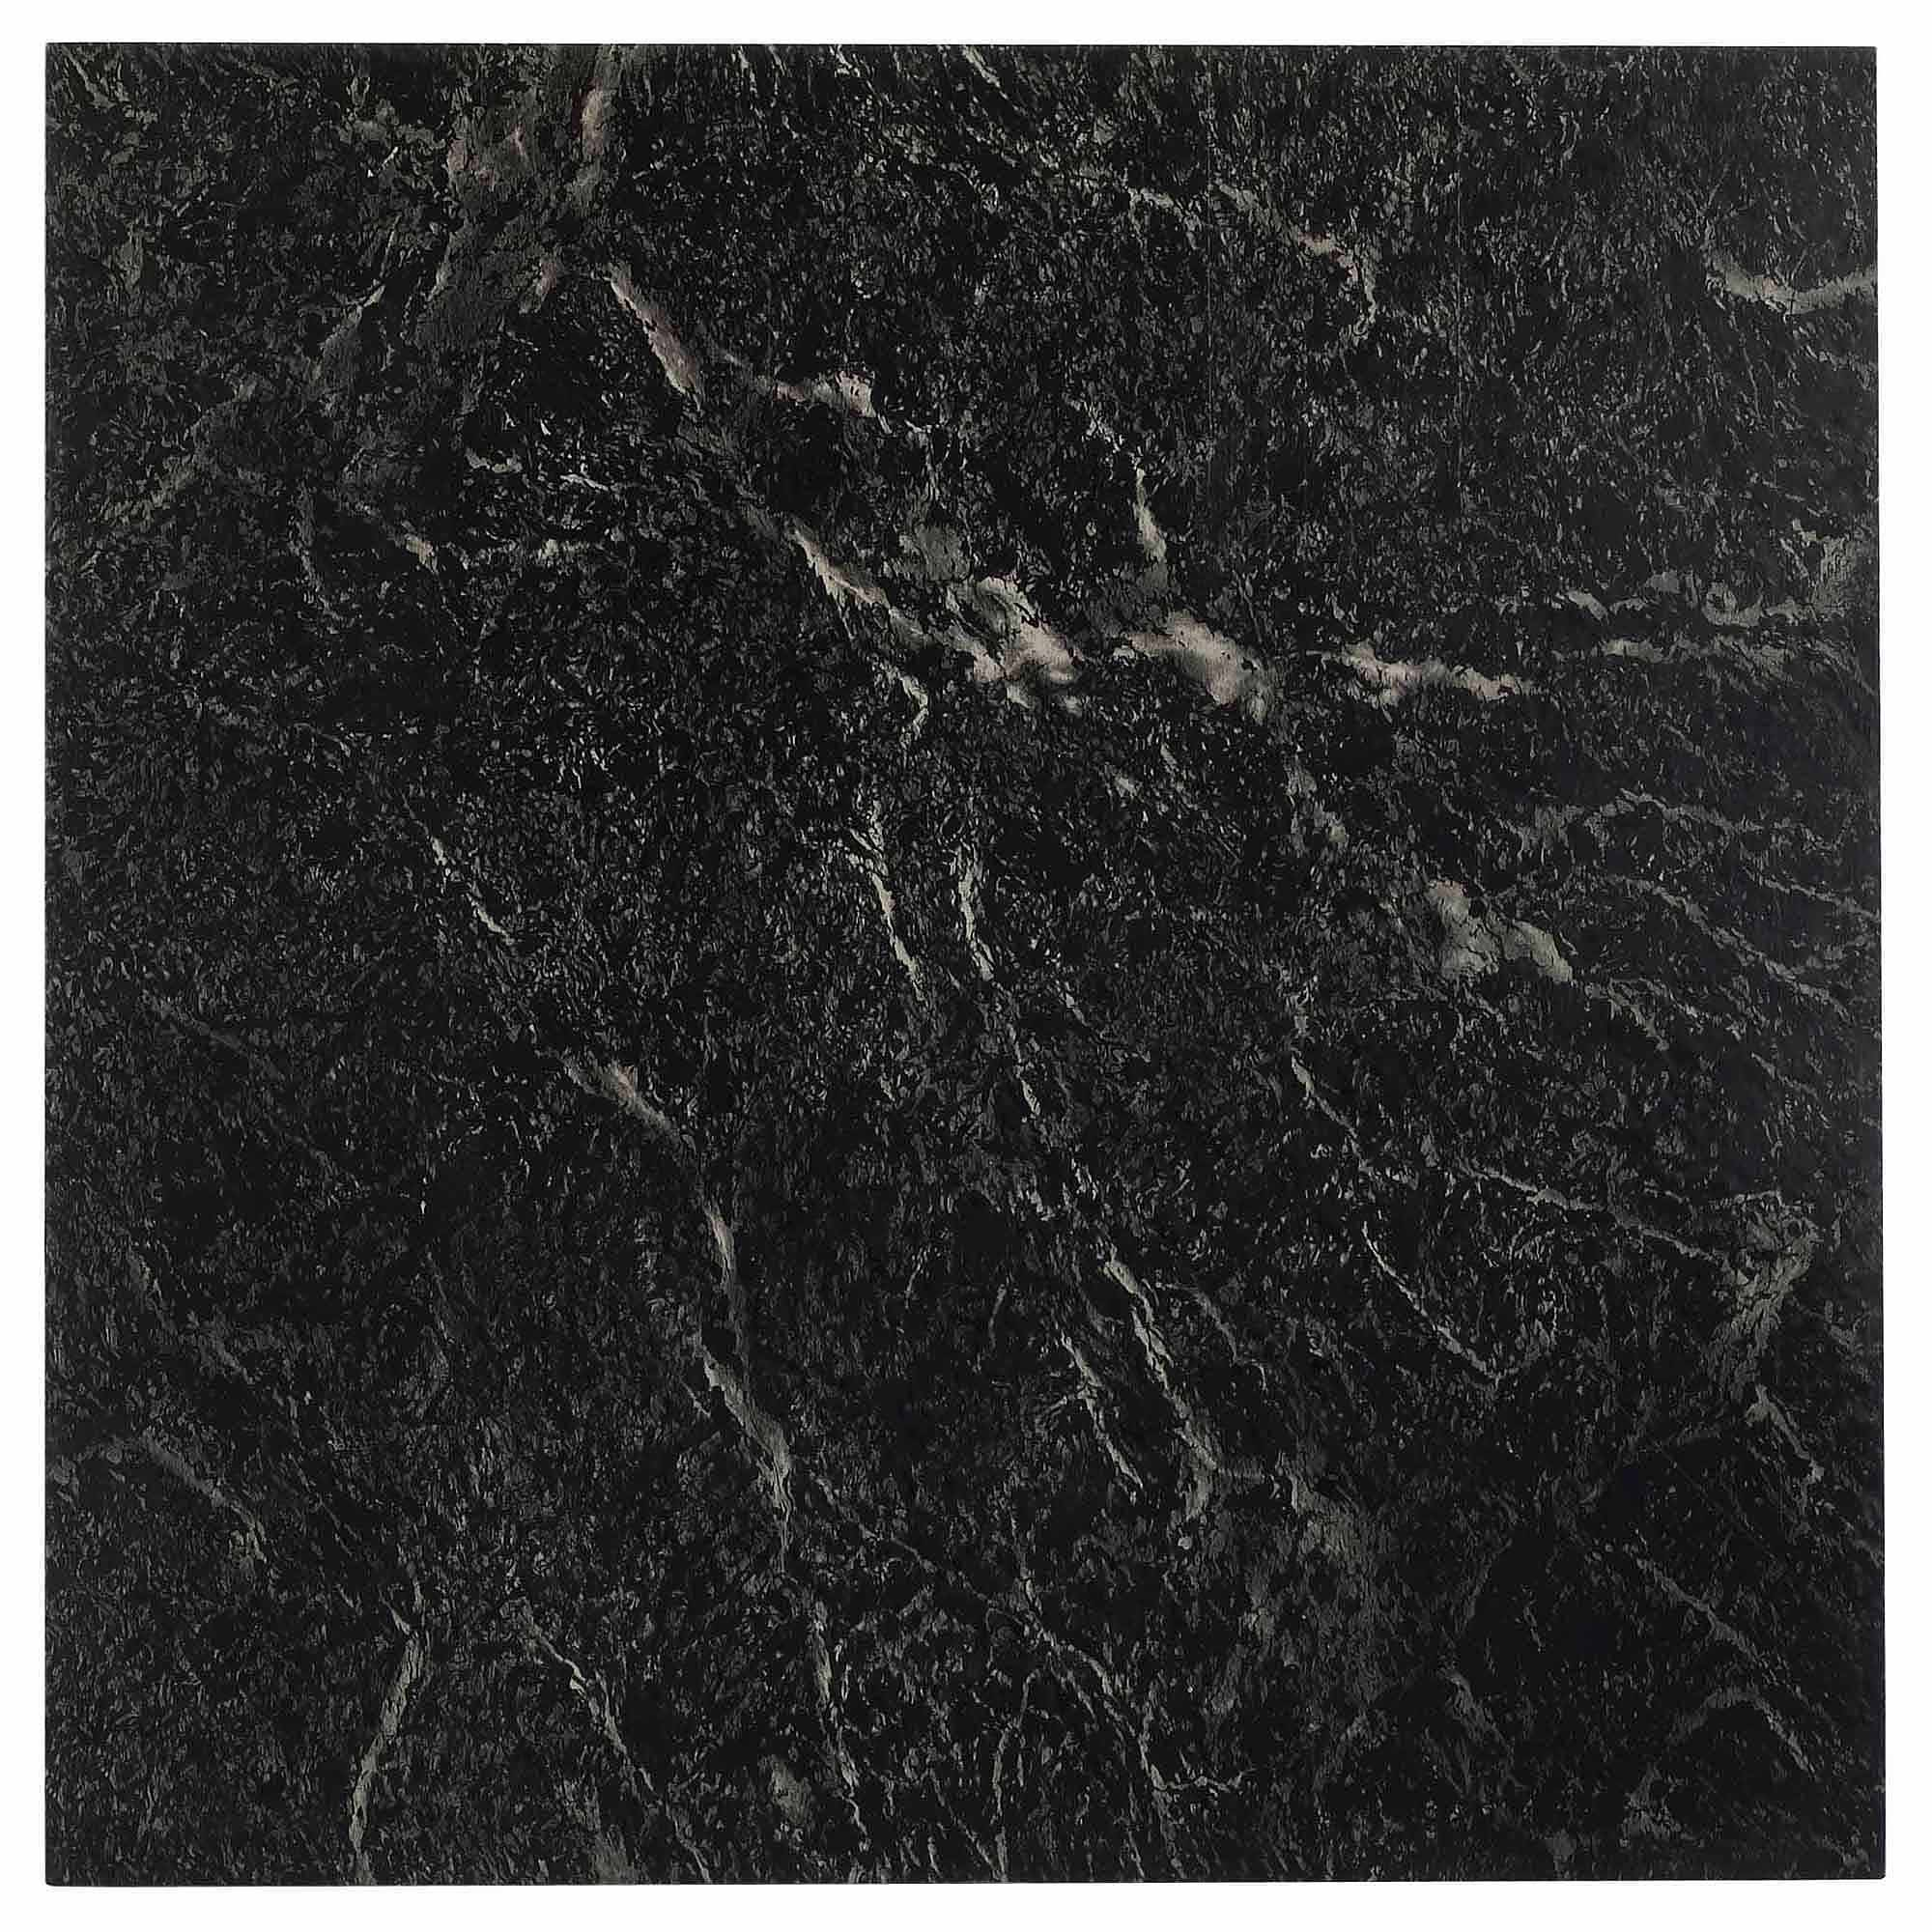 NEXUS Black With White Vein Marble 12x12 Self Adhesive Vinyl Floor Tile    20 Tiles/